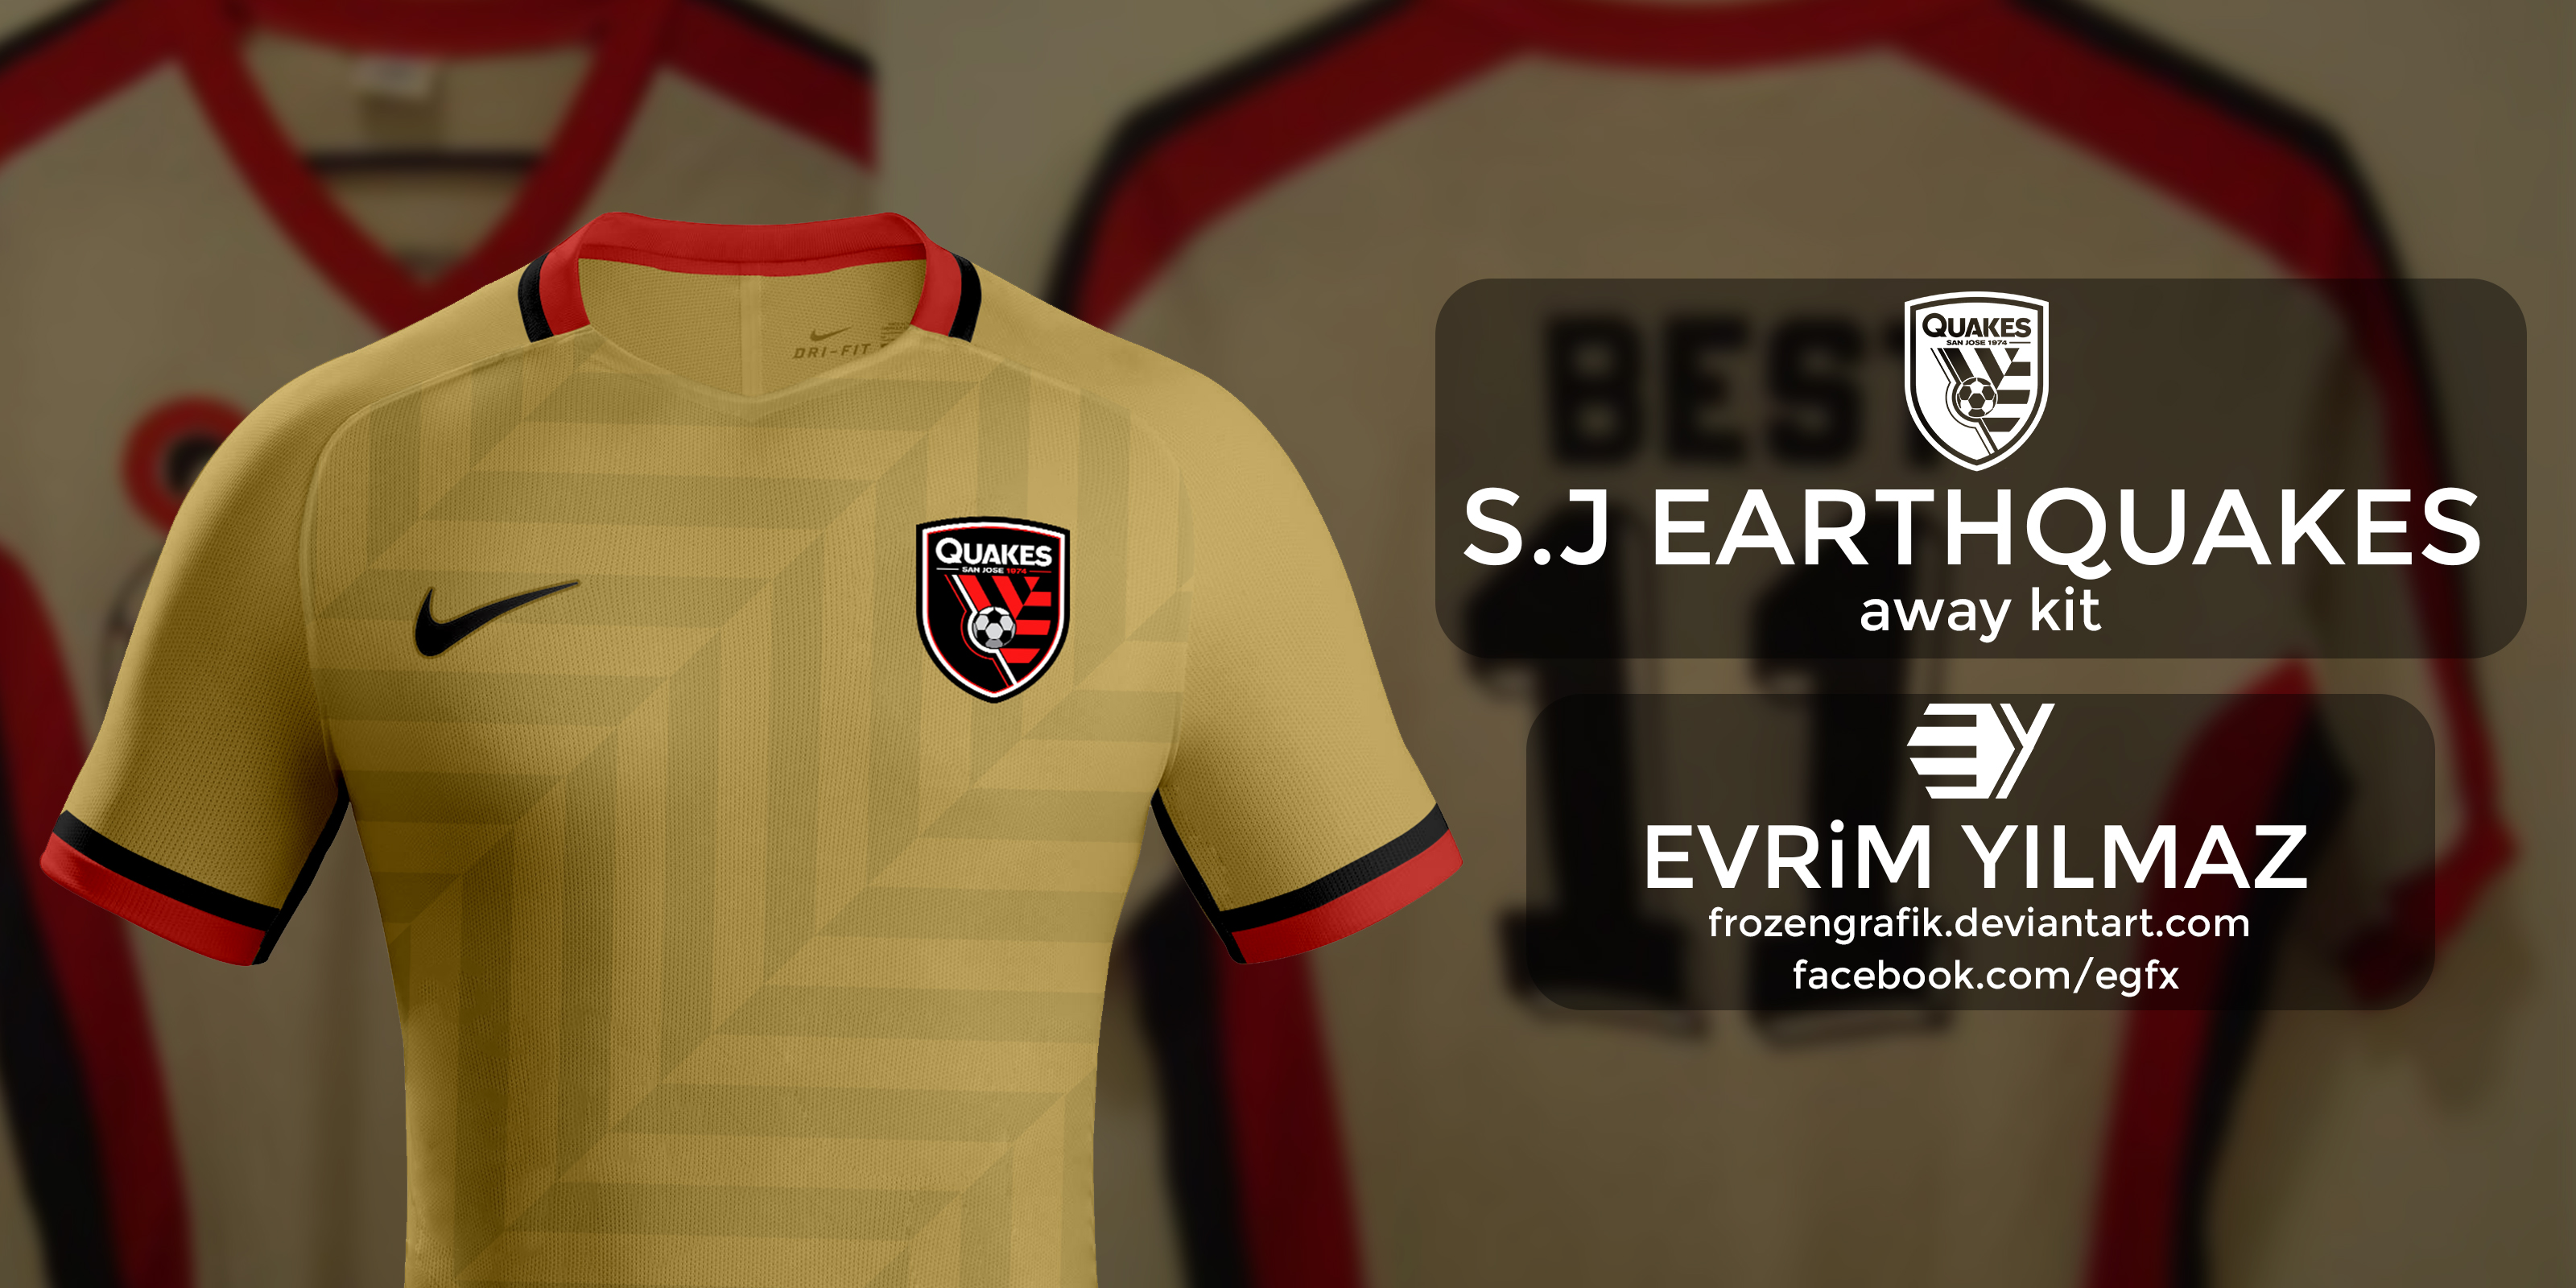 http://orig02.deviantart.net/4fd1/f/2016/173/e/3/san_jose_earthquakes_away_kit_design_by_frozengrafik-da77na5.jpg